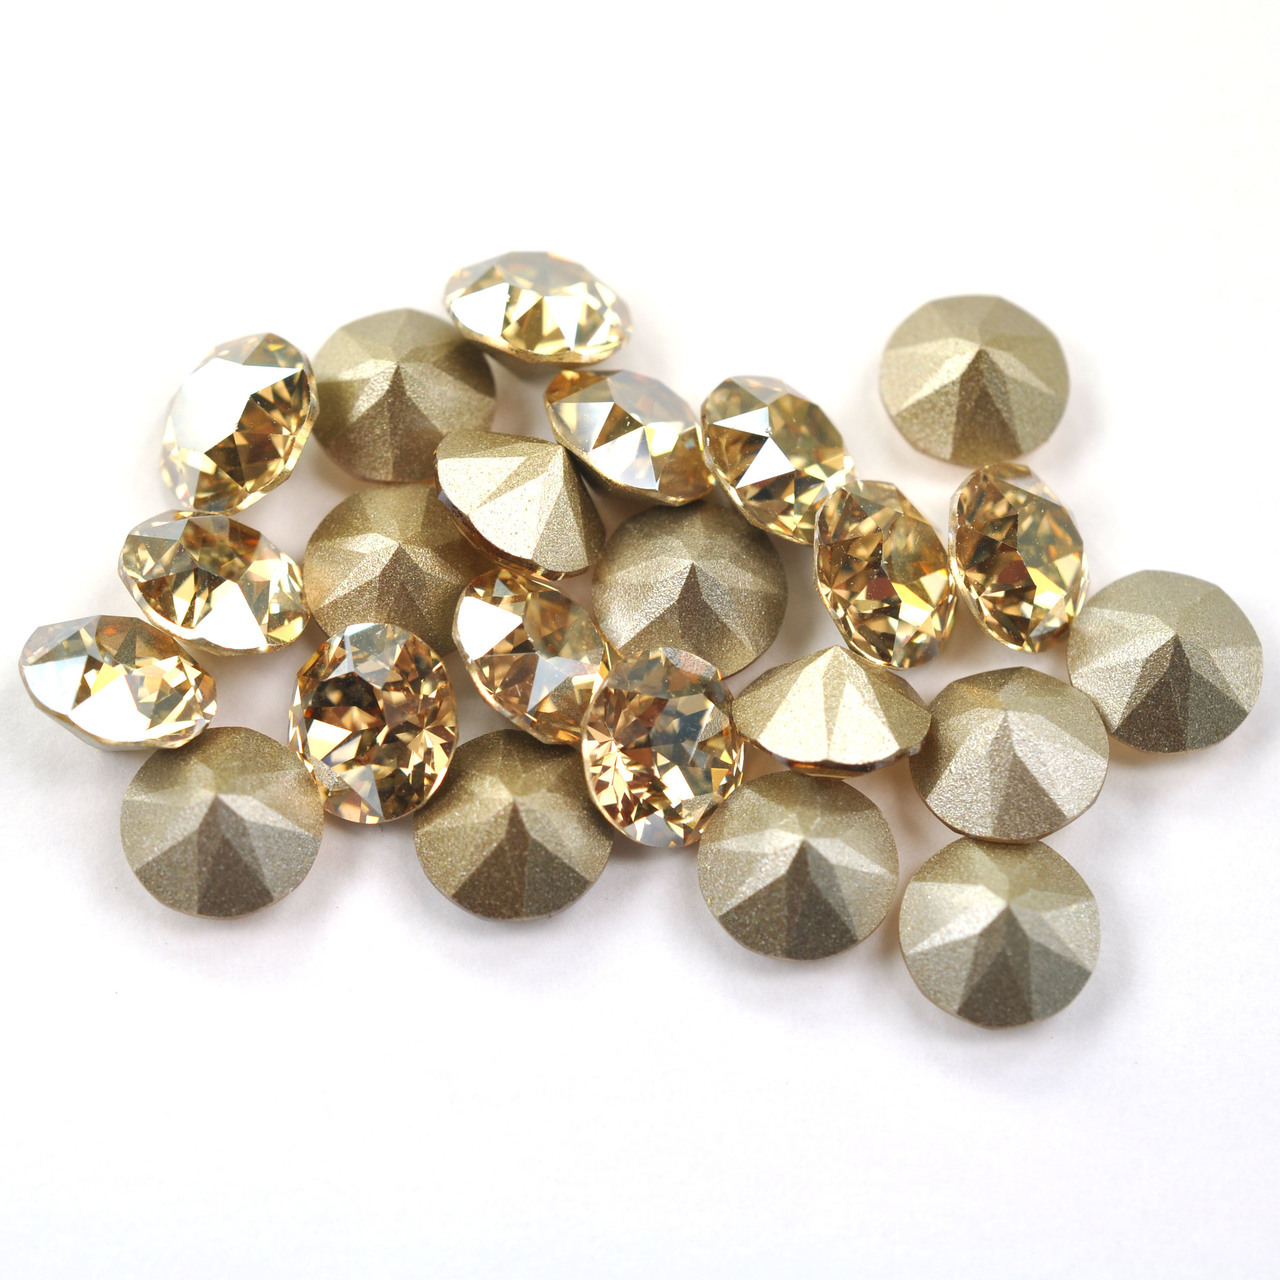 Swarovski Elements, Xirius Chaton 1088 PP10, Golden Shadow 1.6mm 10 buc